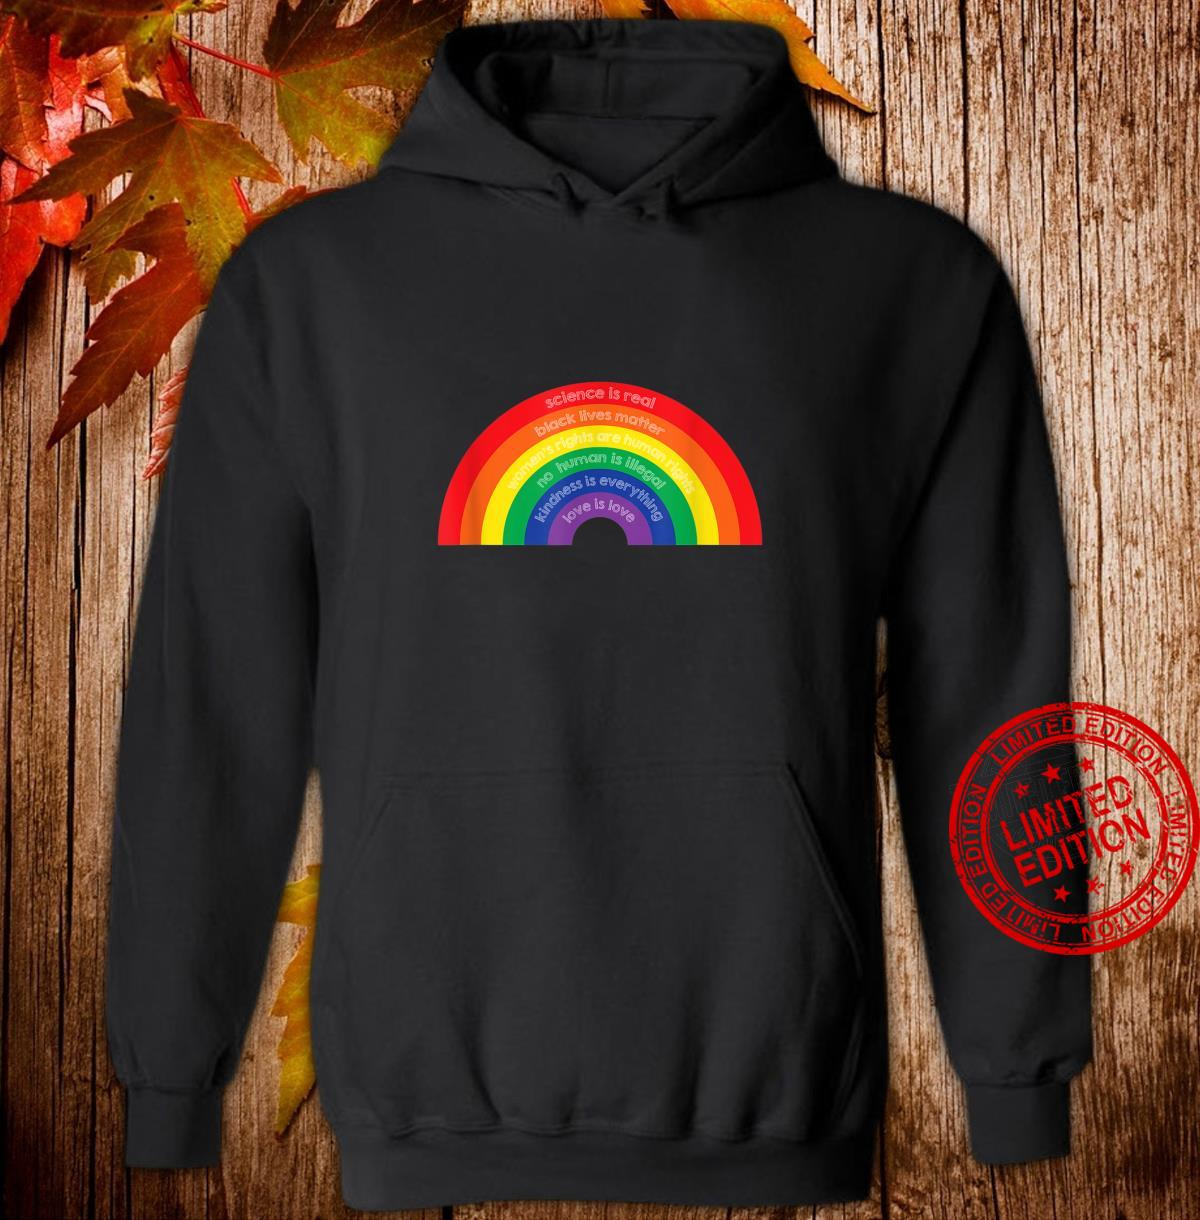 Believe in Science, Kindness & Human Rights Shirt hoodie